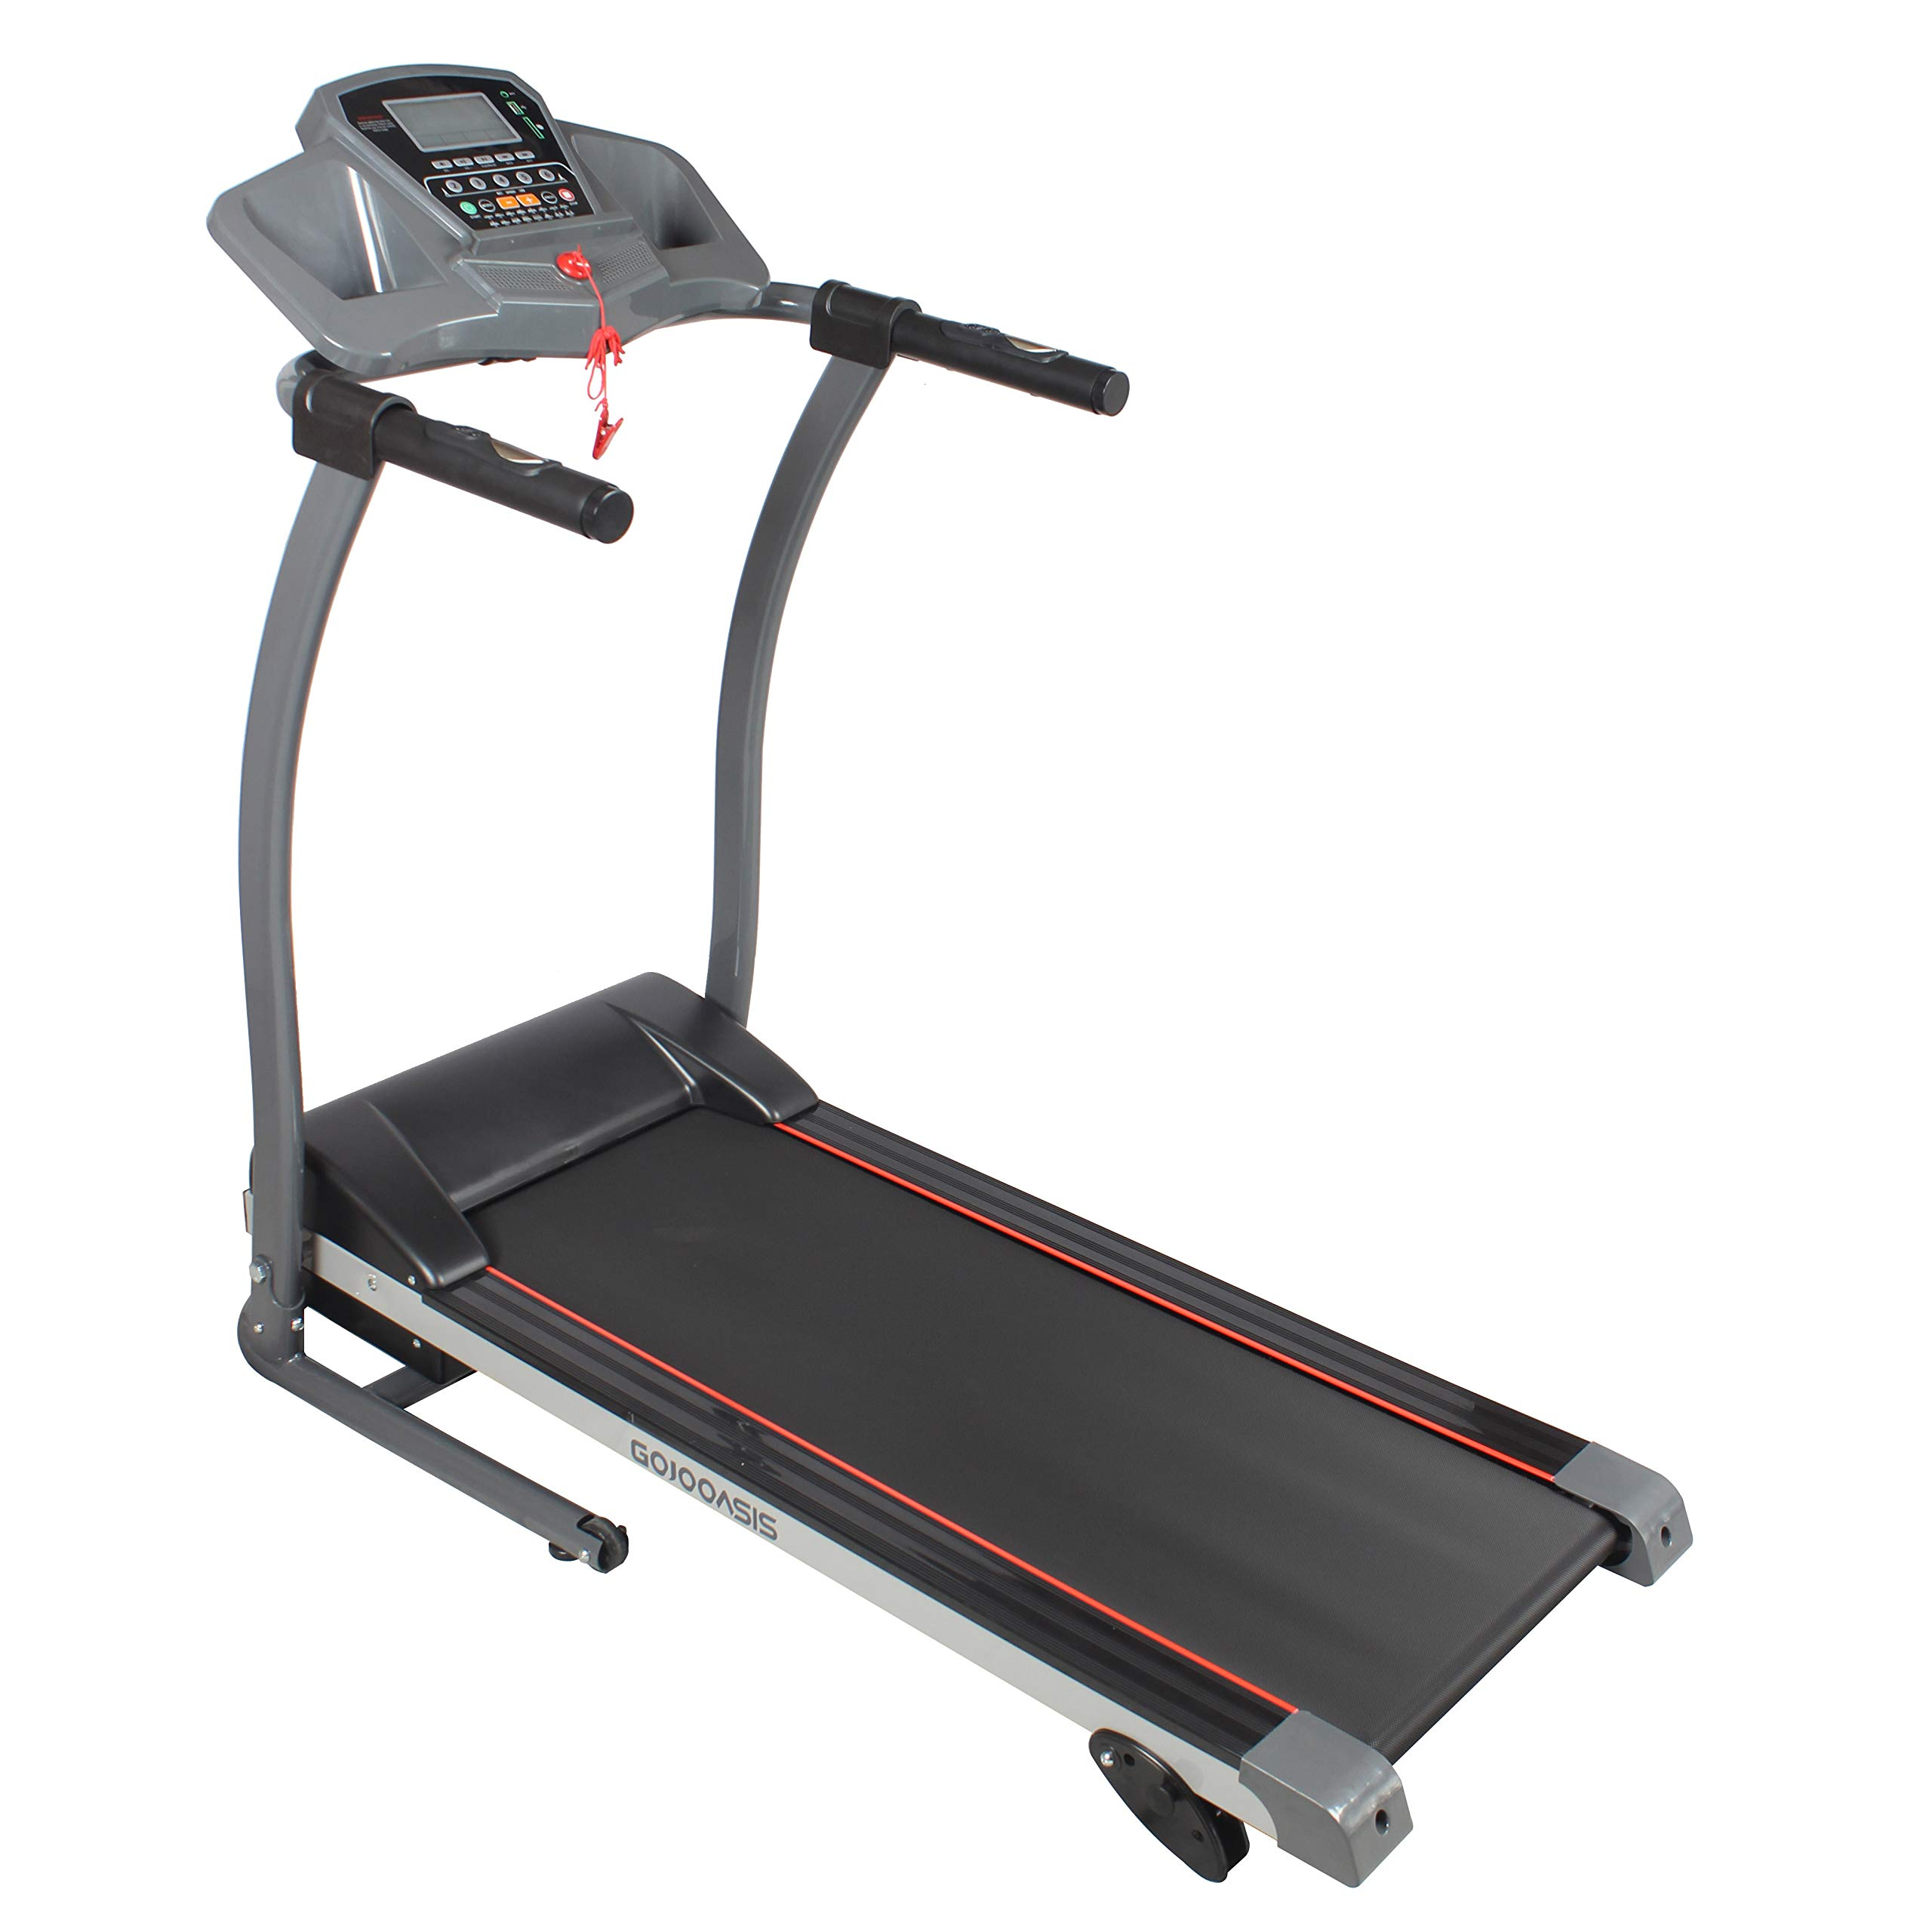 GOJOOASIS 2.0HP Treadmill Folding Motorized Running Exercise Machine w/Incline by GOJOOASIS (Image #1)